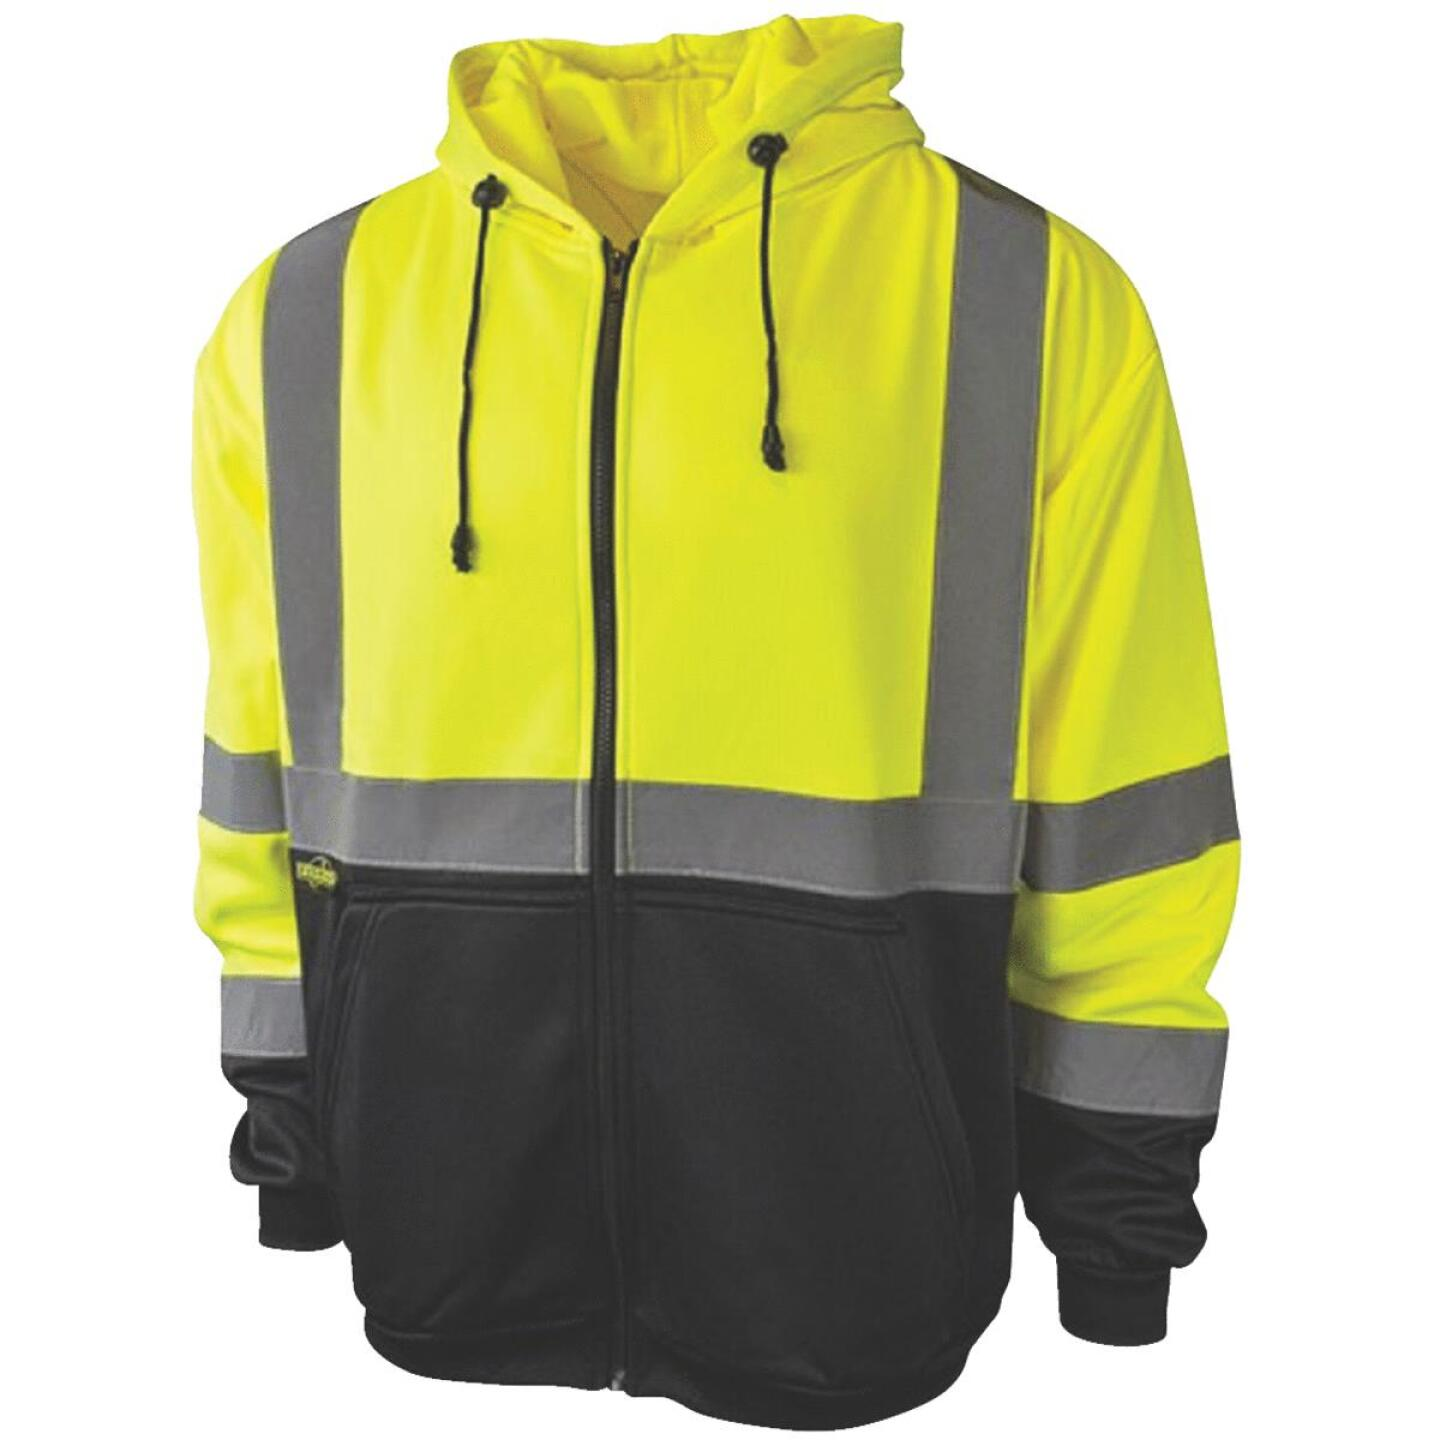 Radians Rad Wear ANSI Class 3 Hi Vis Green Safety Sweatshirt Large Image 1